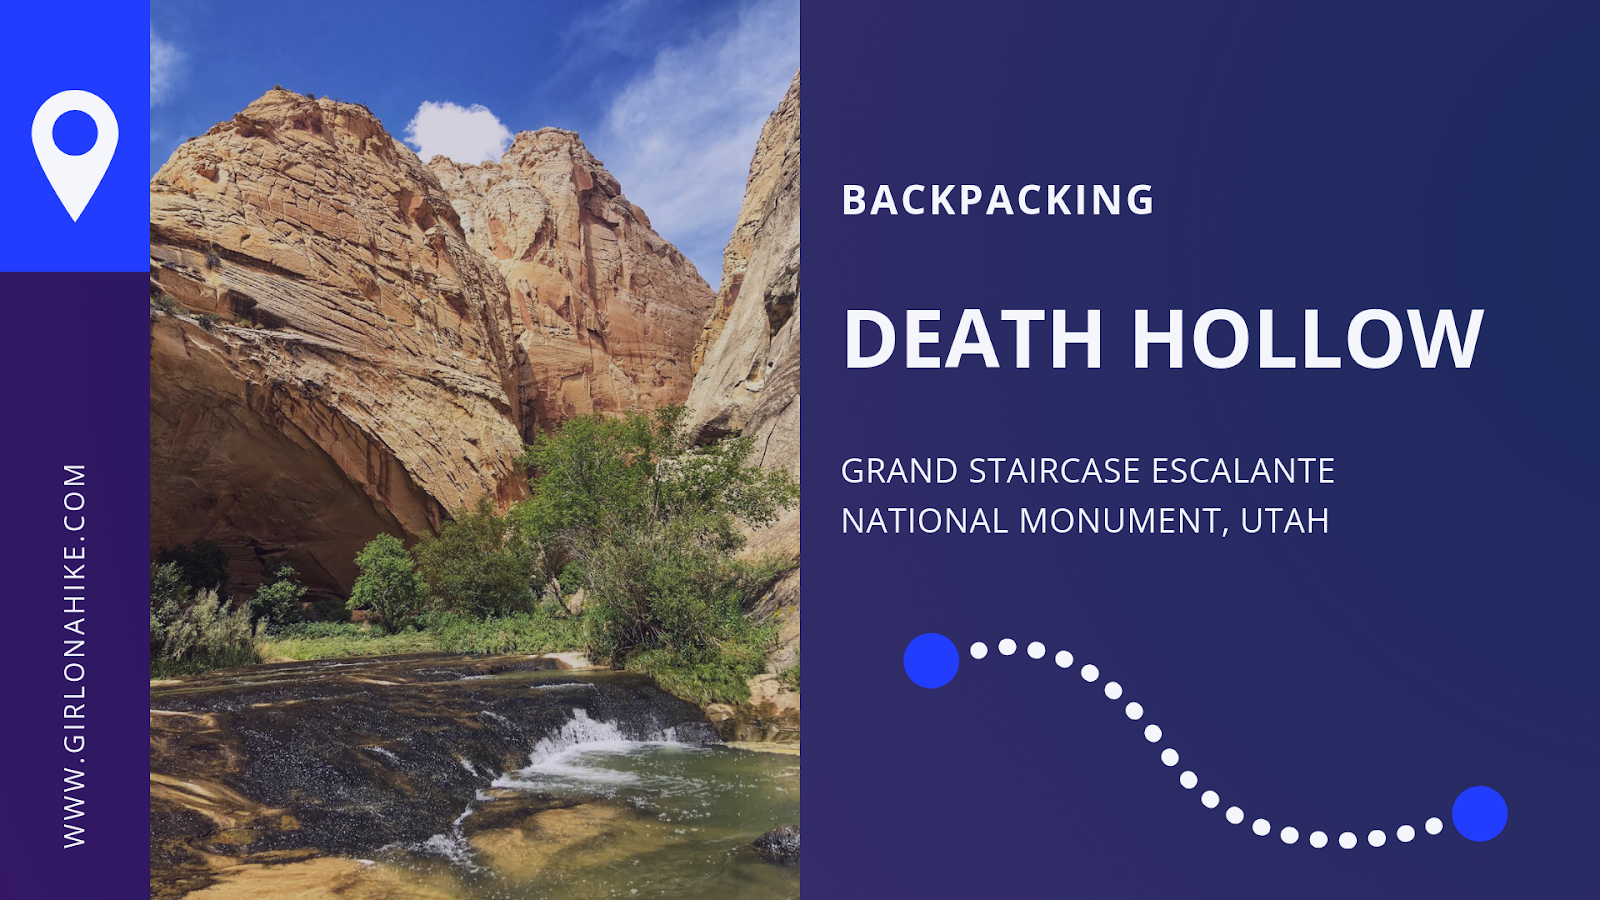 Backpacking Death Hollow, Escalante